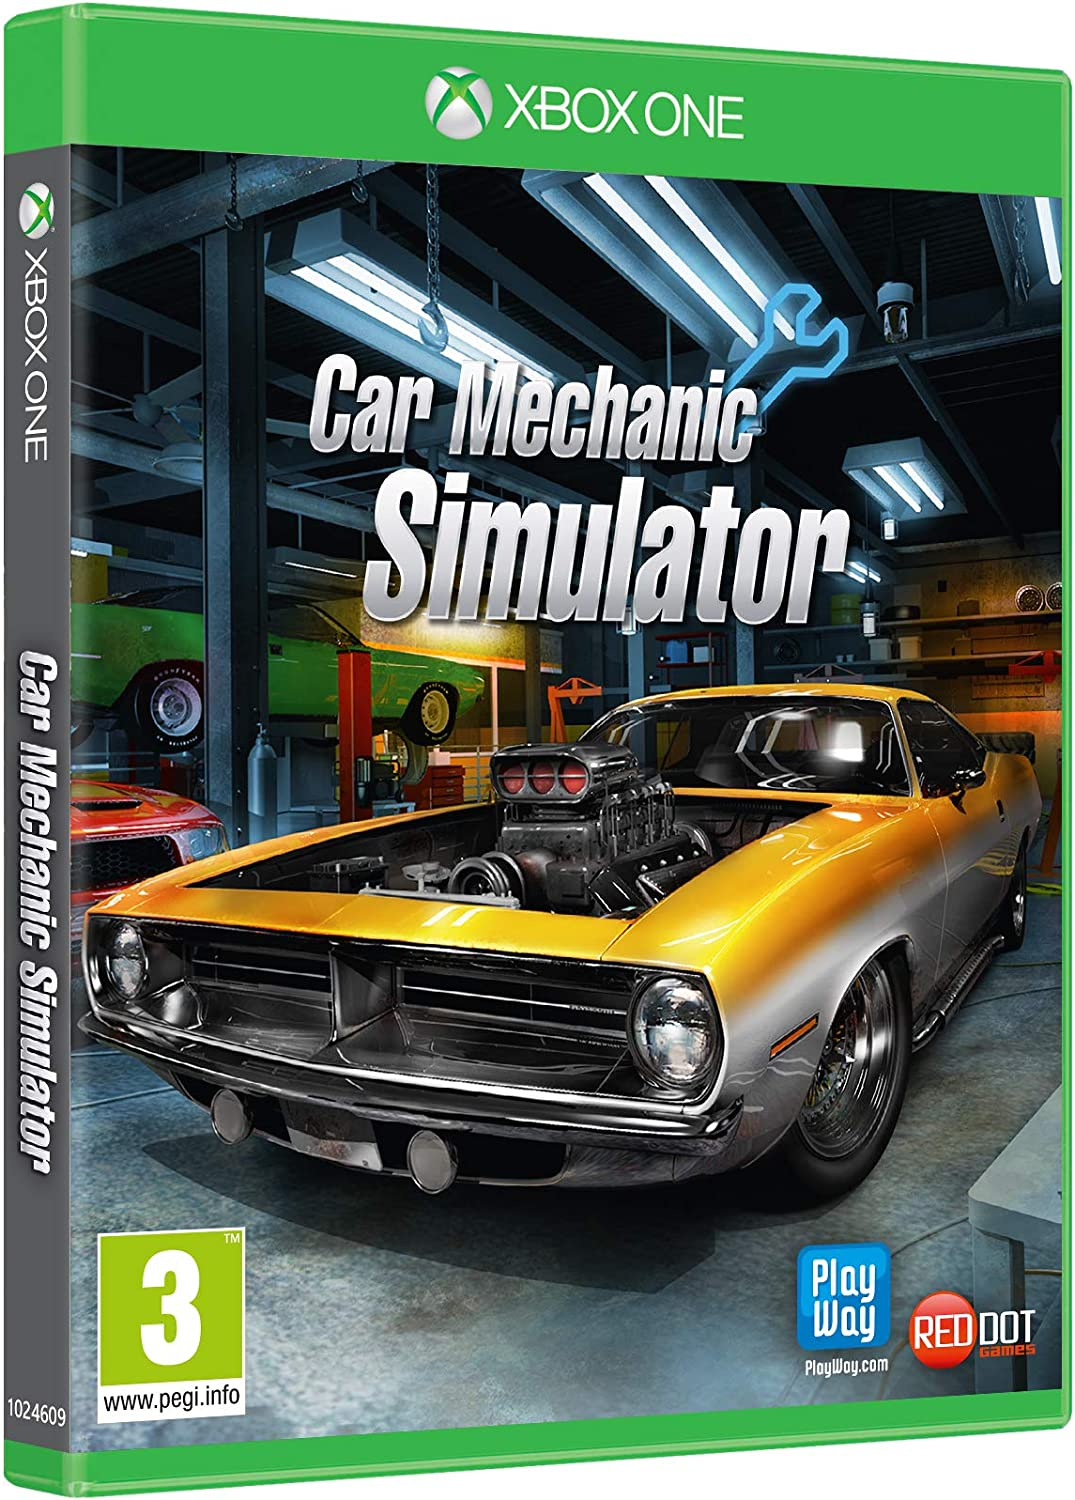 Car Mechanic Simulator - Xbox One [Importación inglesa]: Amazon.es: Videojuegos